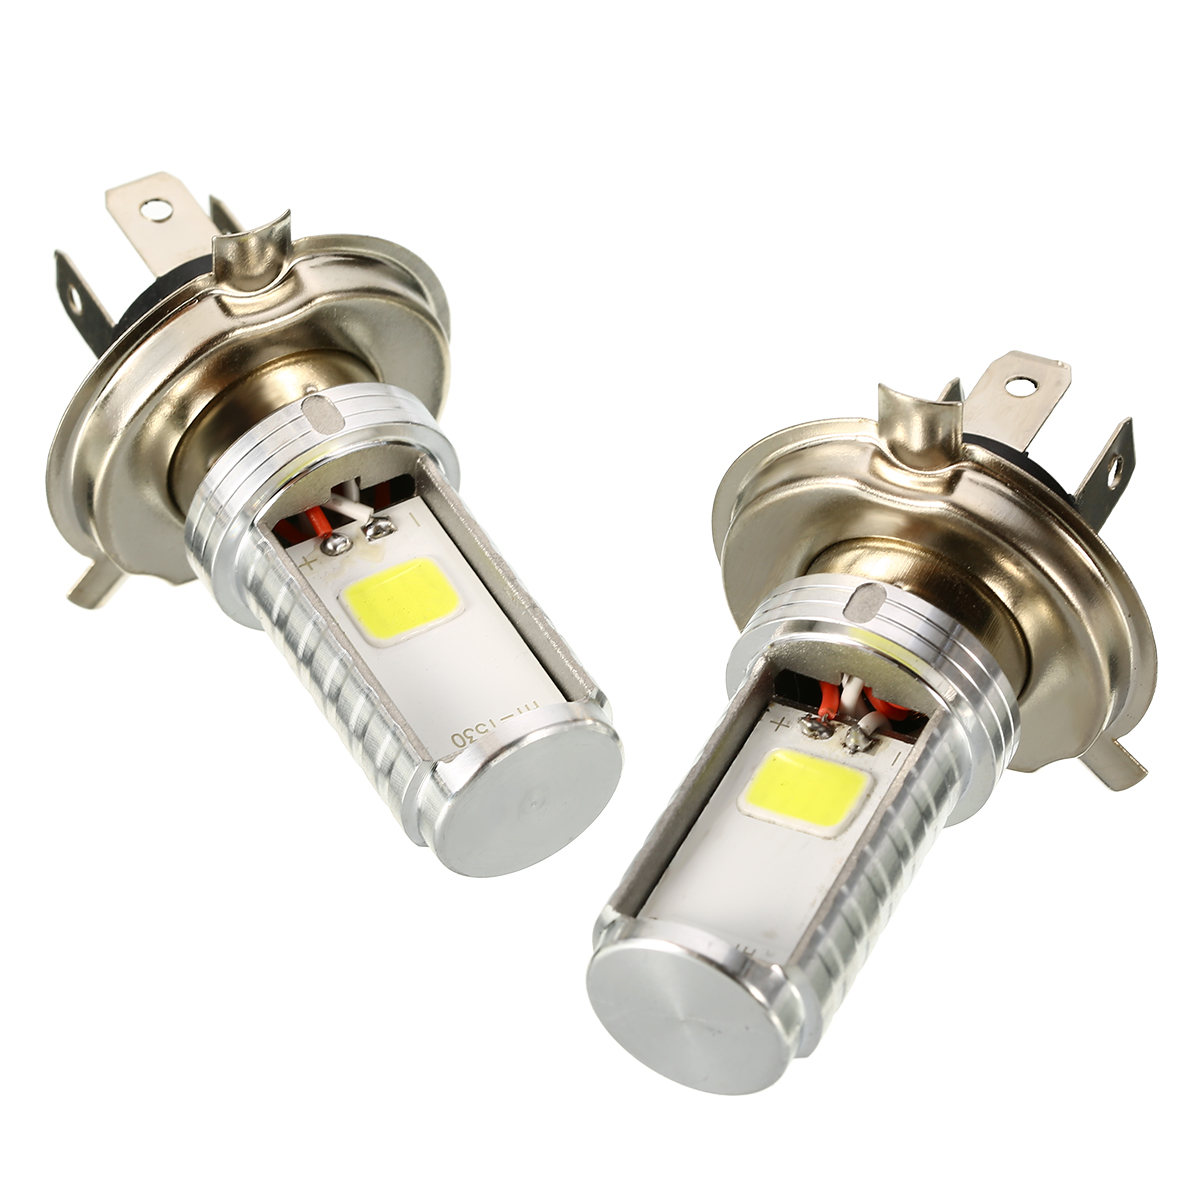 Treyues 2pcs Motorcycle H4 COB LED Headlight Hi/Lo 12W/6W Beam Front Light Lamp Bulb White For Honda Kawasaki Suzuki